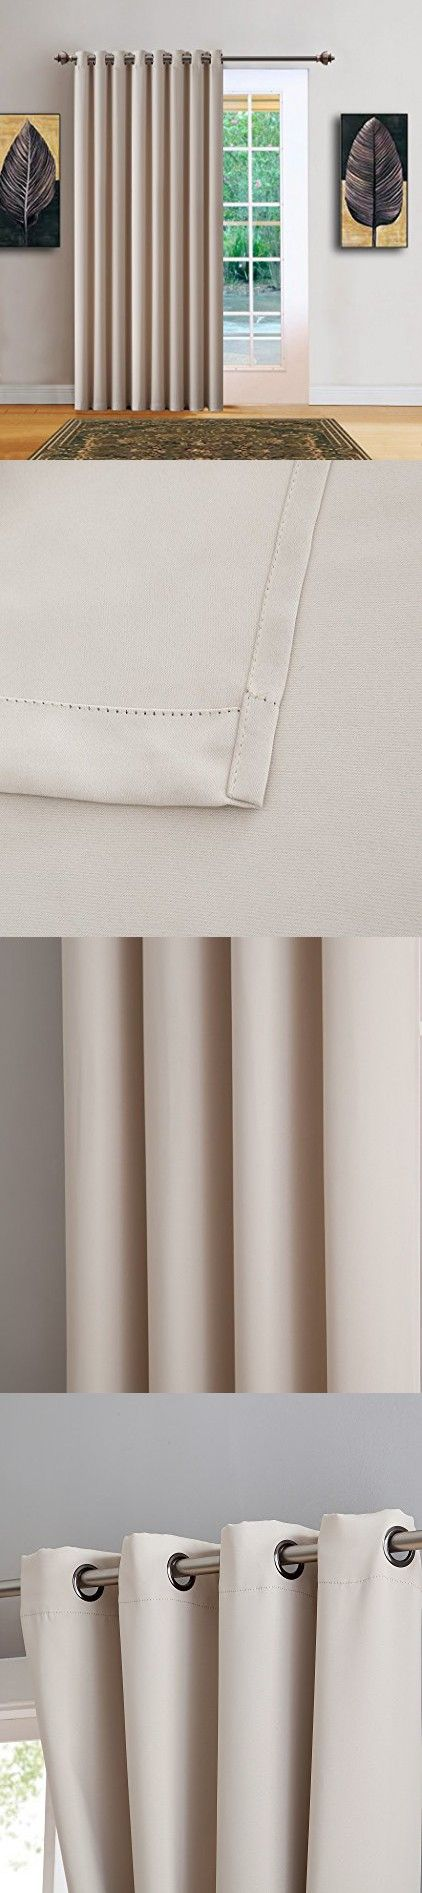 "Warm Home Designs 1 Panel of Cream Ivory Blackout Patio Door Curtains. Each Extra Wide, Extra Long Insulated Thermal Sliding Door or Room Divider Curtain Is 102"" X 96"" in Size - N Ivory Patio 96"